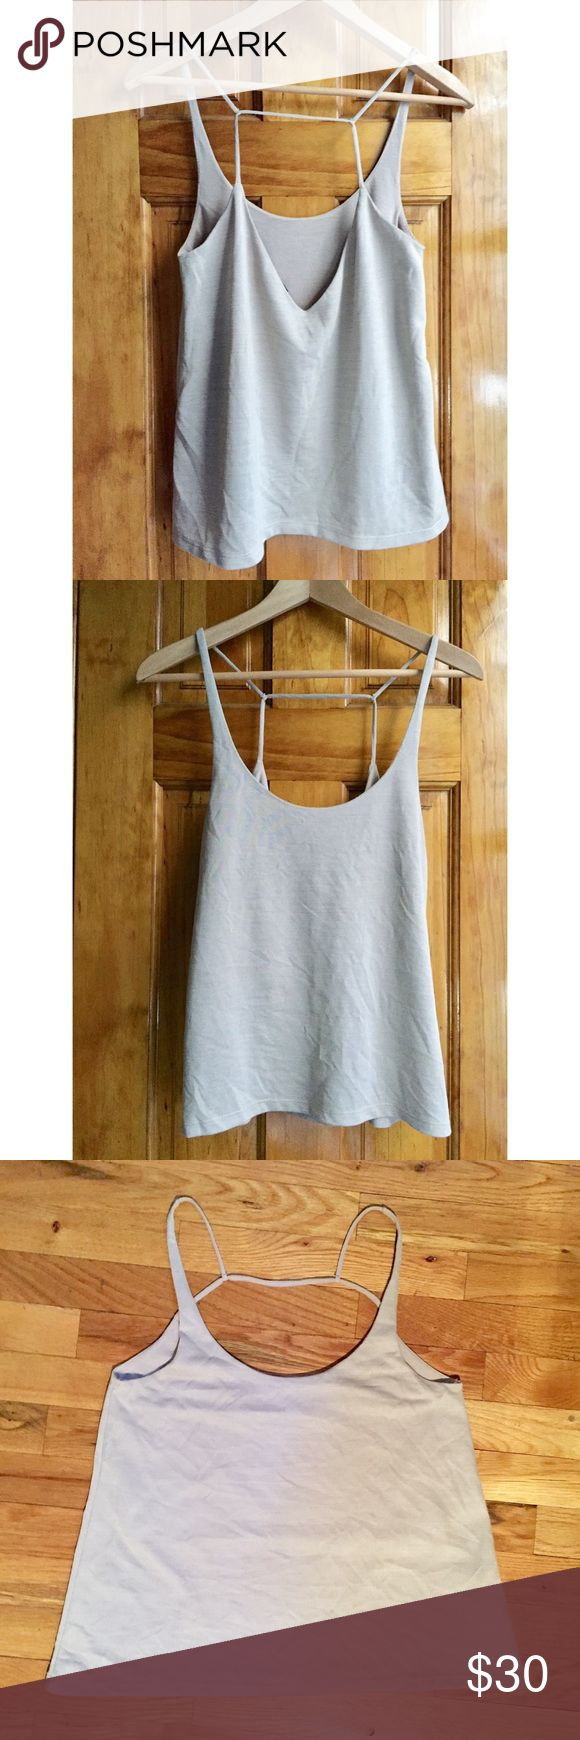 """Zara Beige Cami Tank Top SMALL Bust:15"""" Length:17"""" // Size:S // 15% off on bundles // I ship same-day from pet/smoke-free home. Buy with confidence. I am a top seller here with over 400 5-star ratings and A LOT OF LOVE NOTES. Check them out. 😊😎 Zara Tops Tank Tops"""